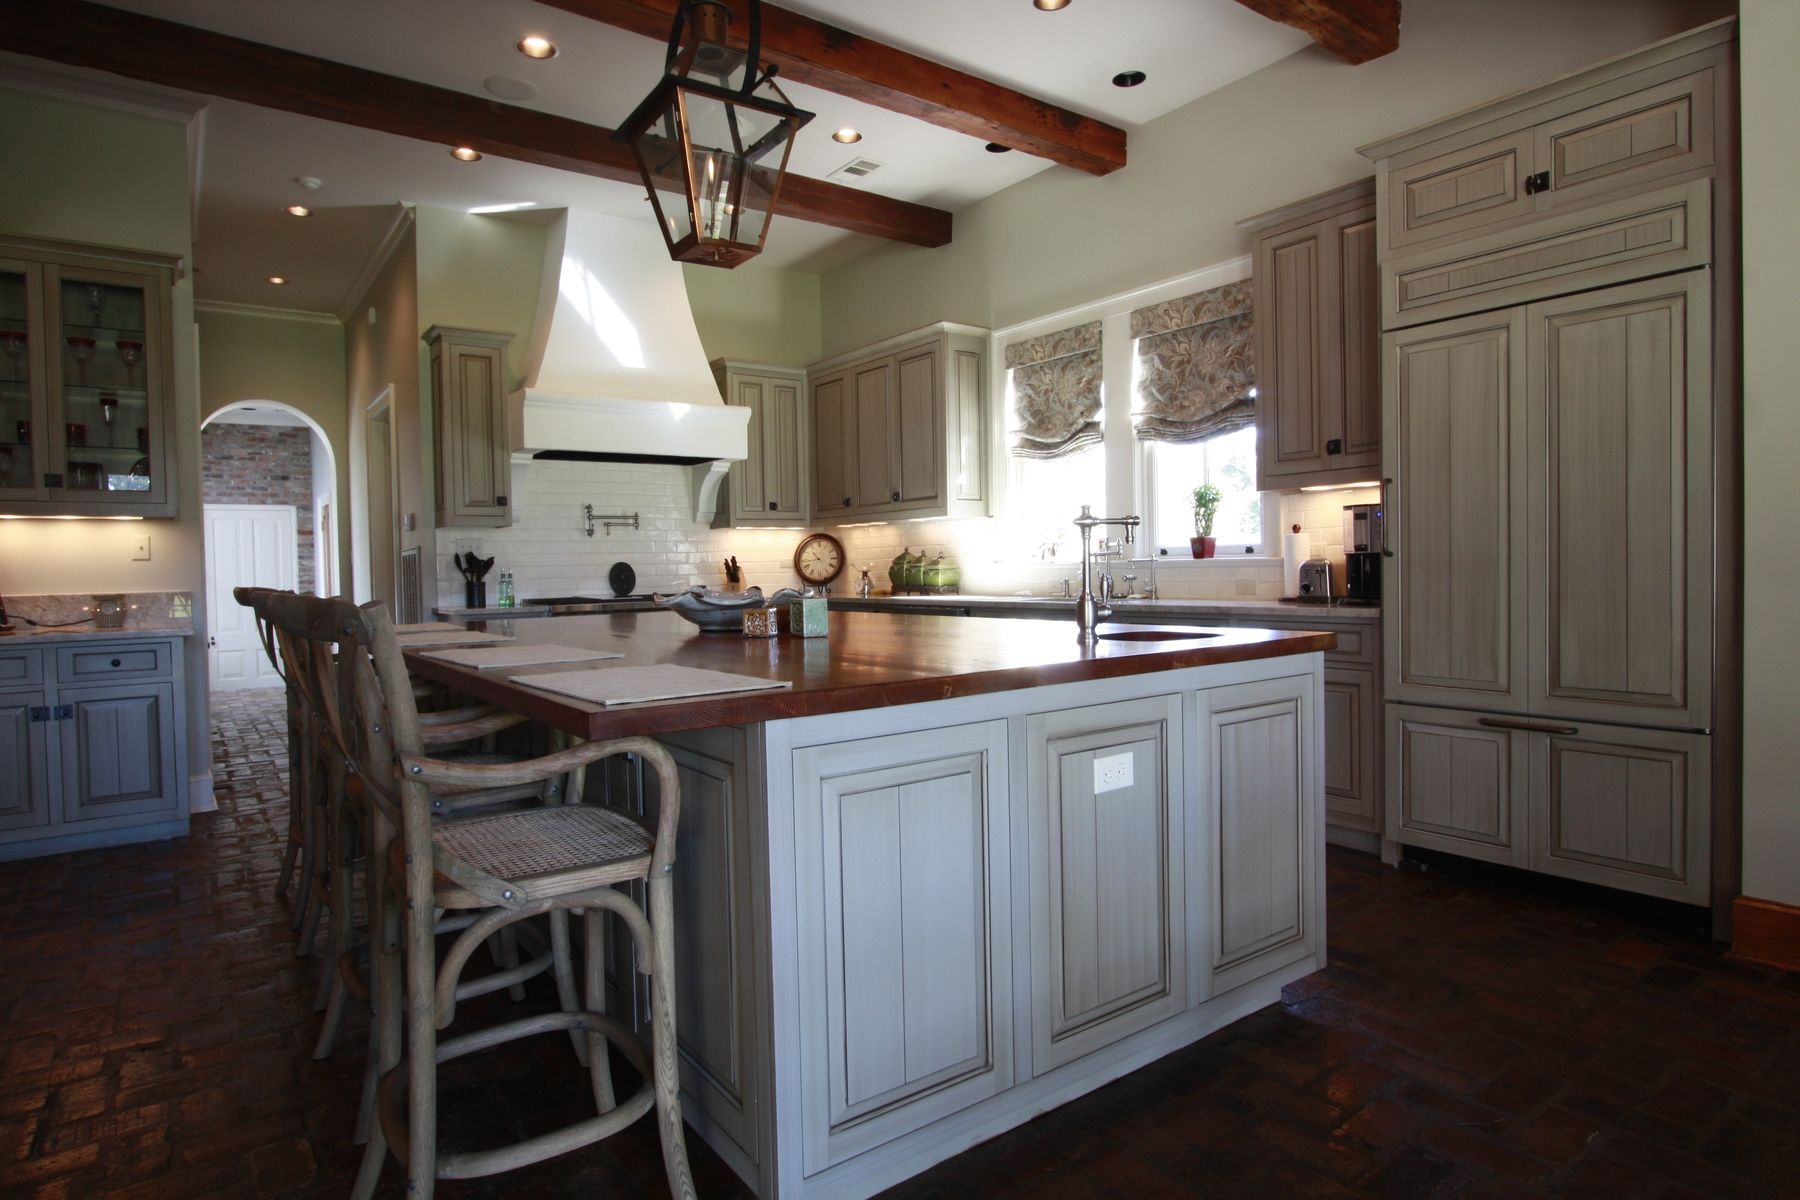 Handmade custom kitchen with glazed cabinets by northshore millwork llc - Custom made kitchen cabinets ...